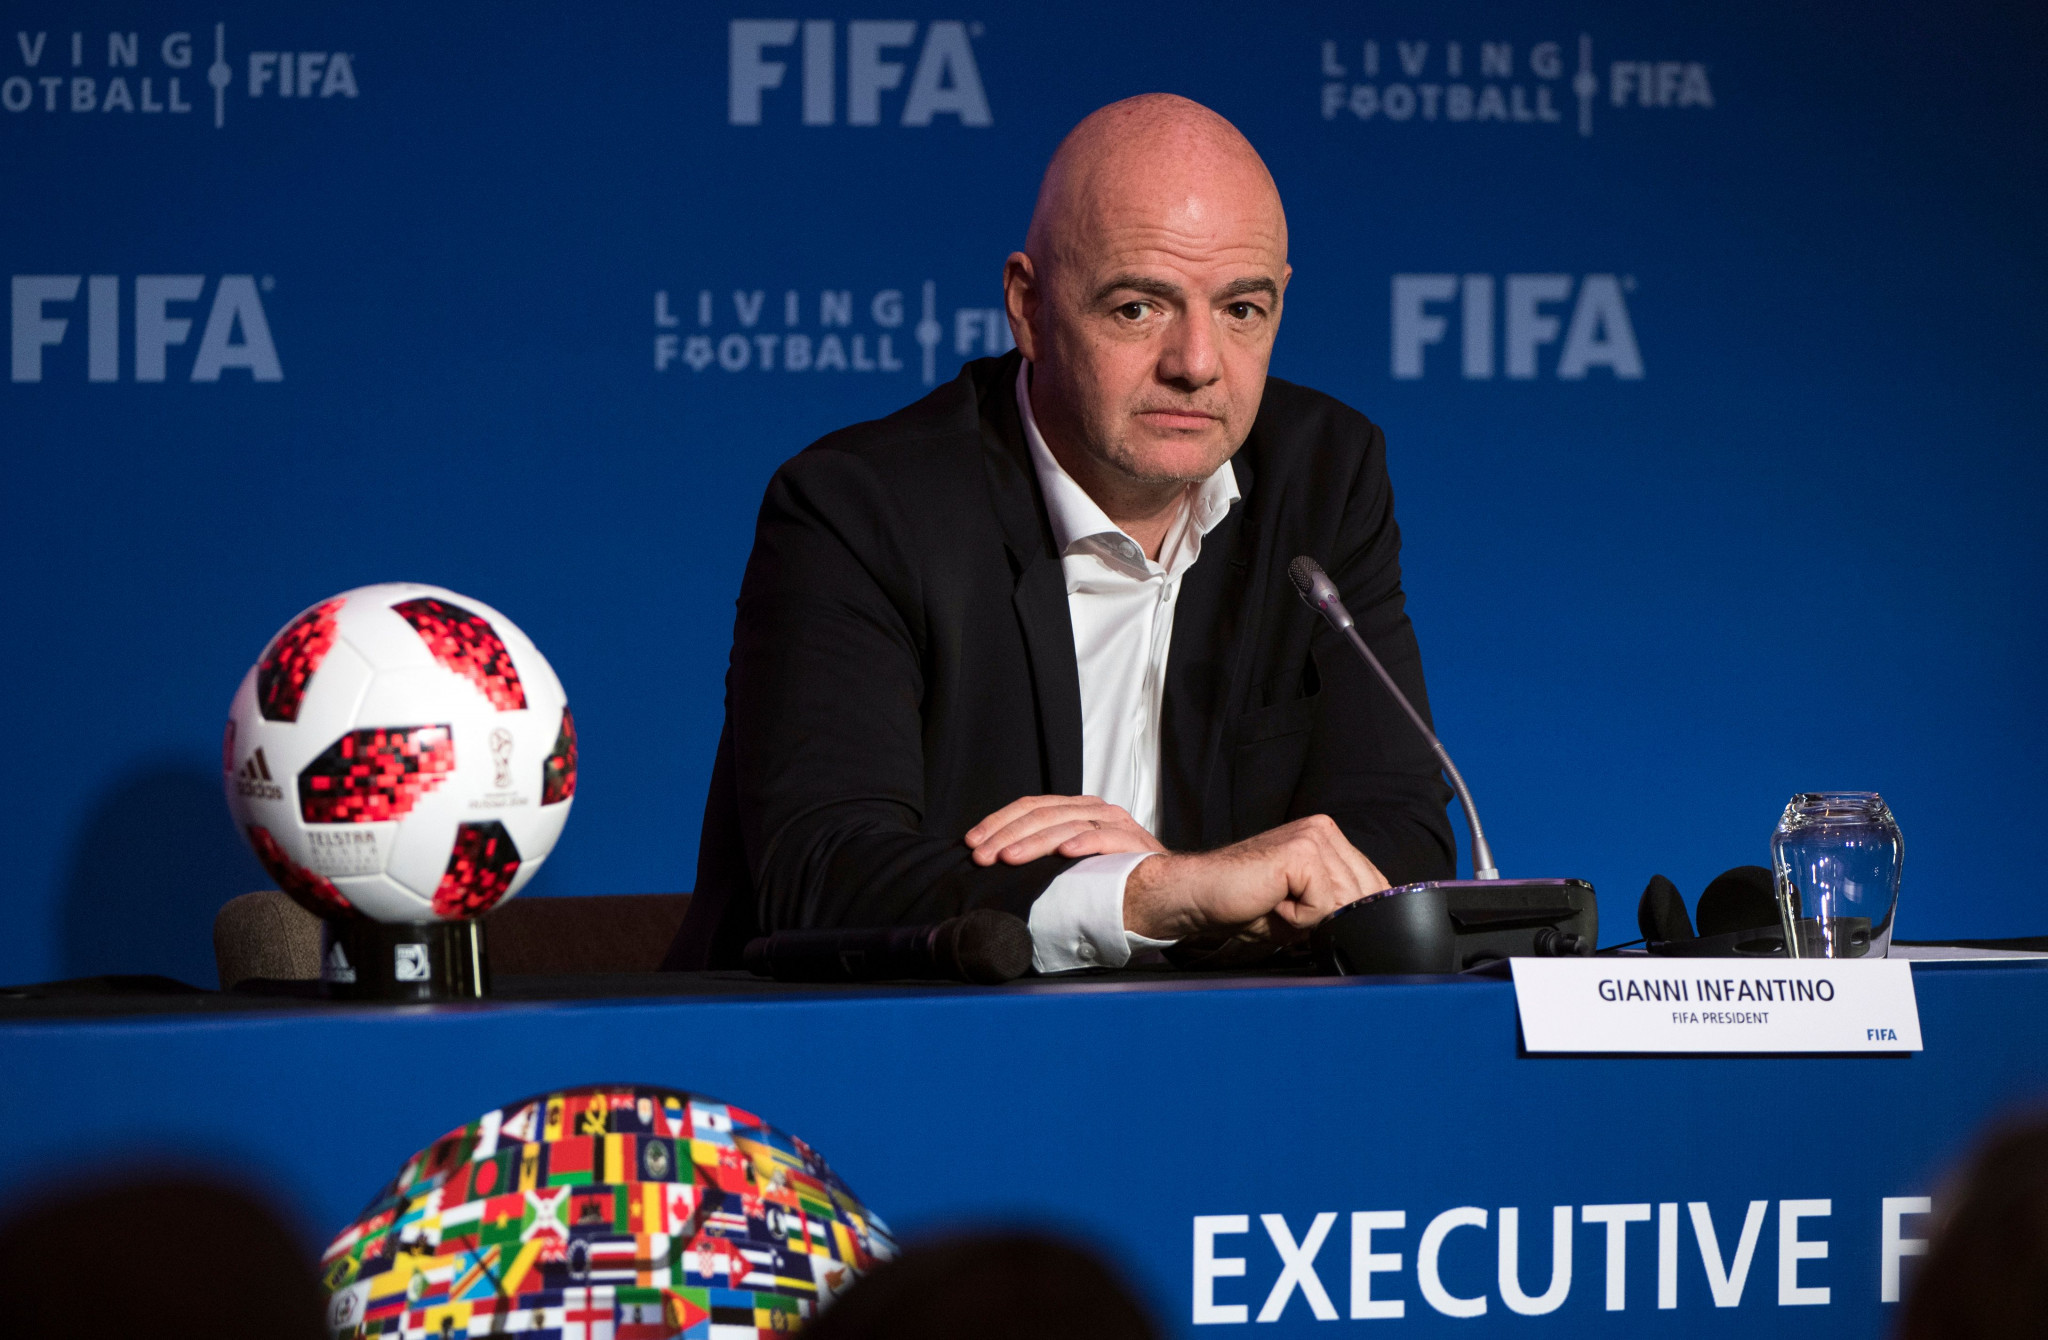 Gianni Infantino could face a challenger in his bid for re-election as FIFA President ©Getty Images